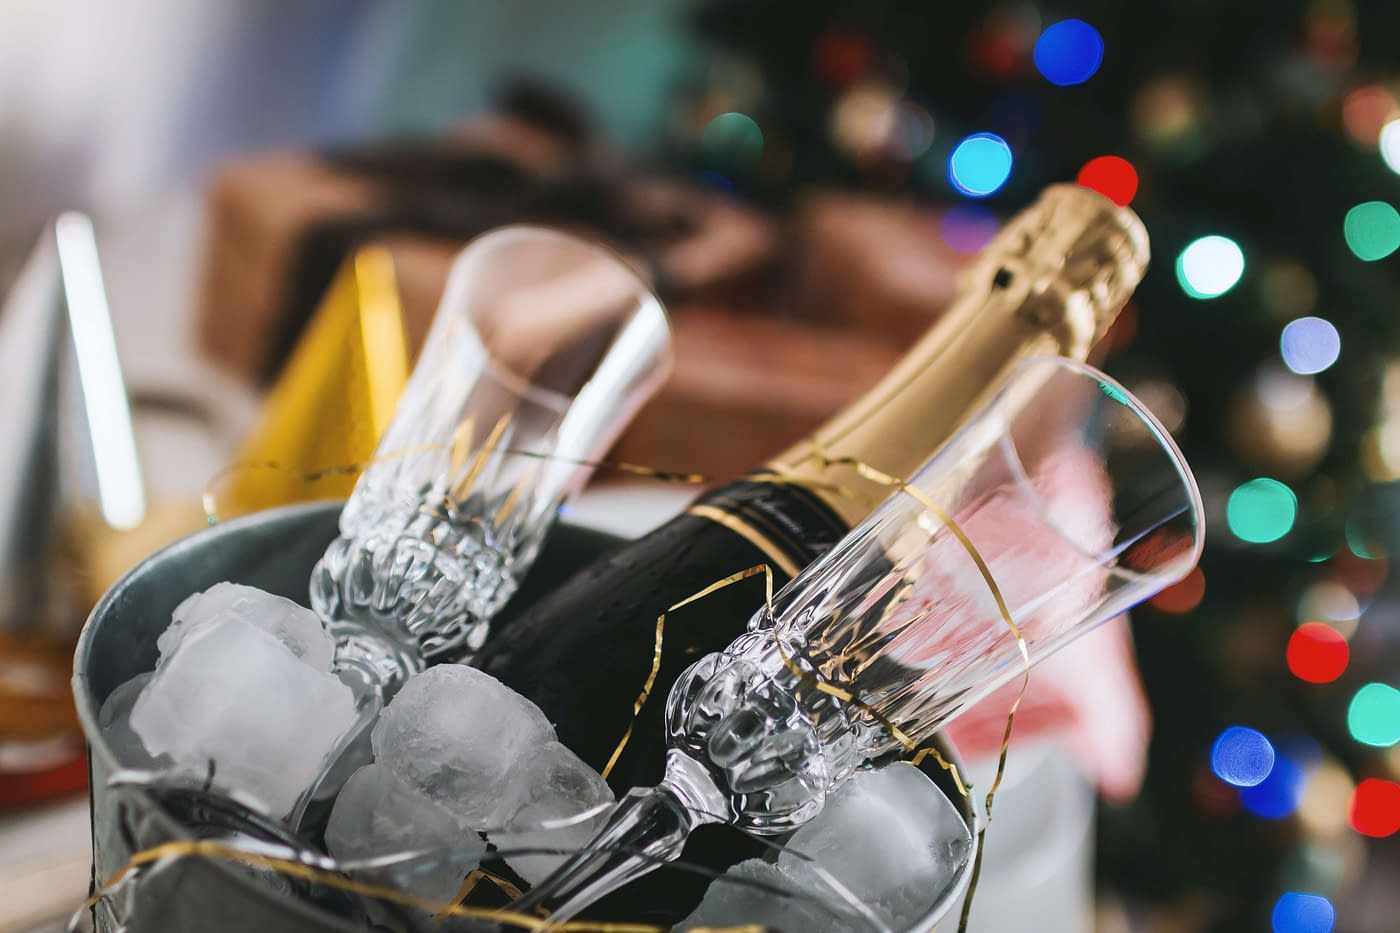 bottle of champagne in an ice bucket with two glasses and christmas tree in the background